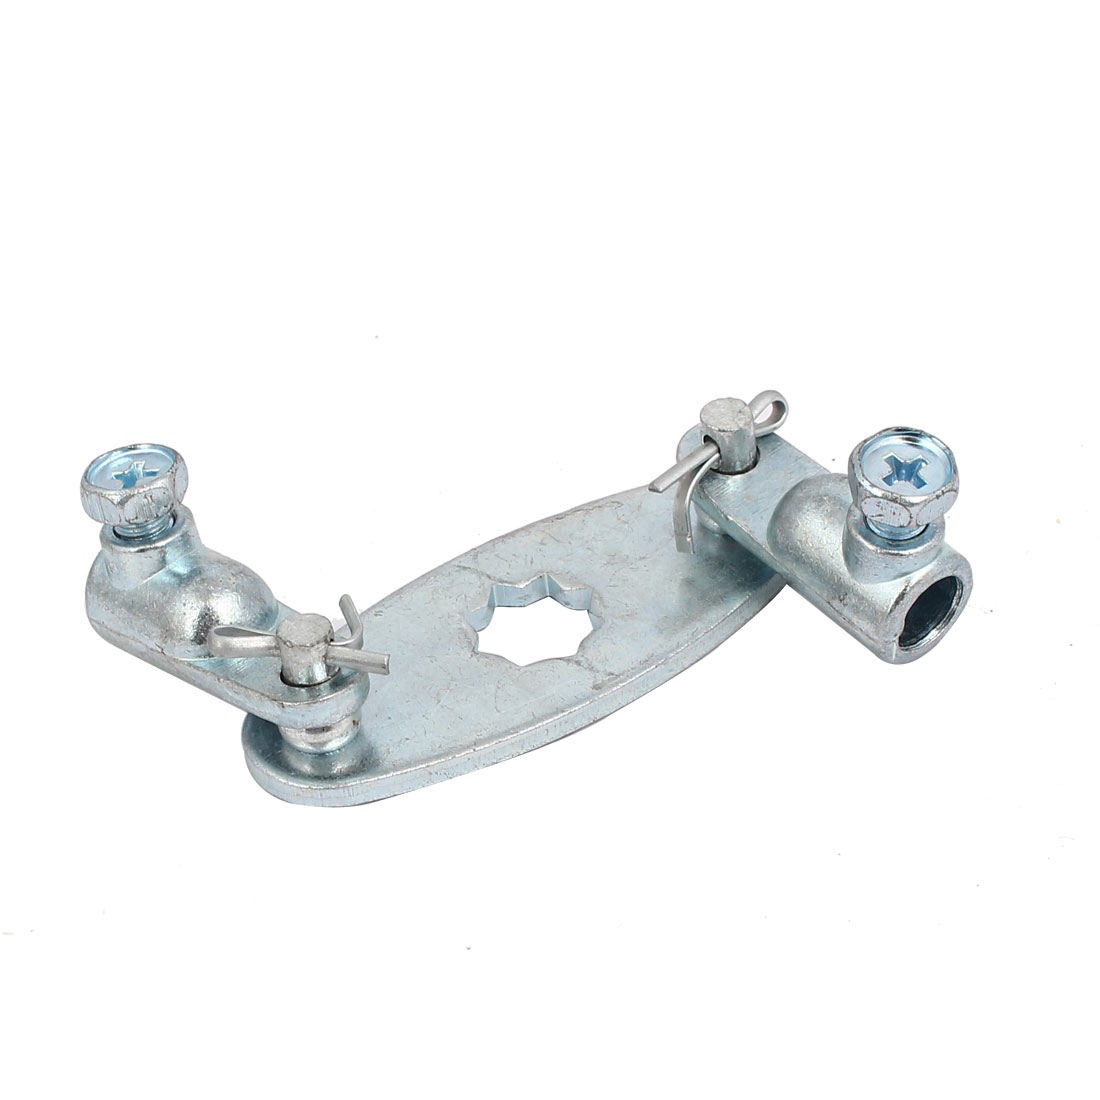 Cabinet Door Metal Screw Fixed Rotating Hinge Silver Blue 106mm Length